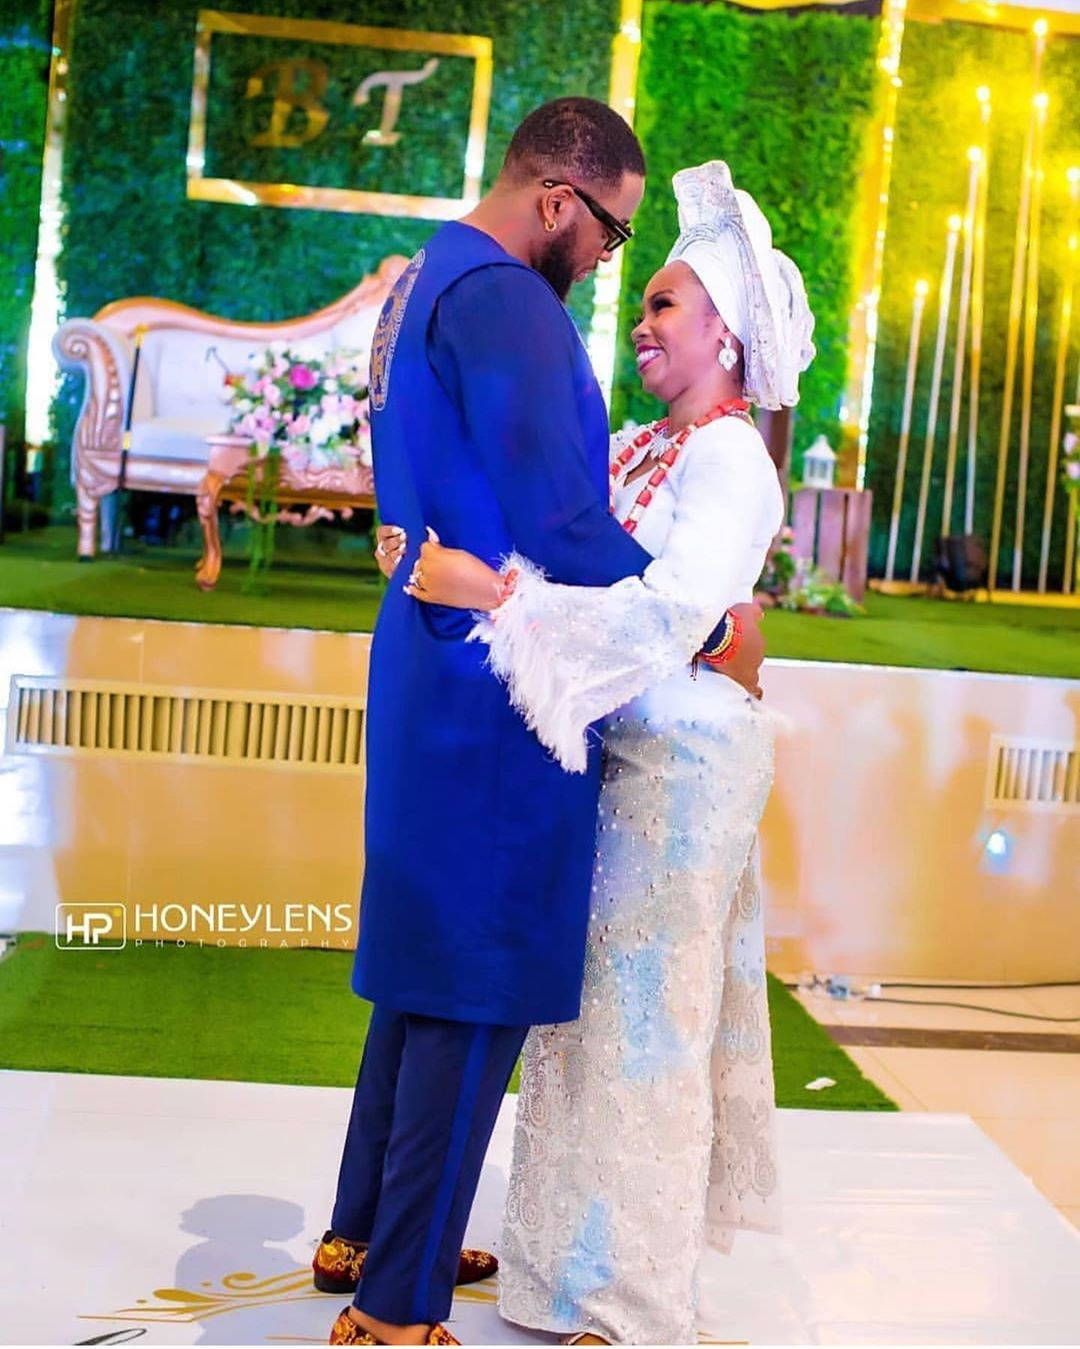 Read What Alex Unusual wrote about BamBam And Teddy A's Marriage